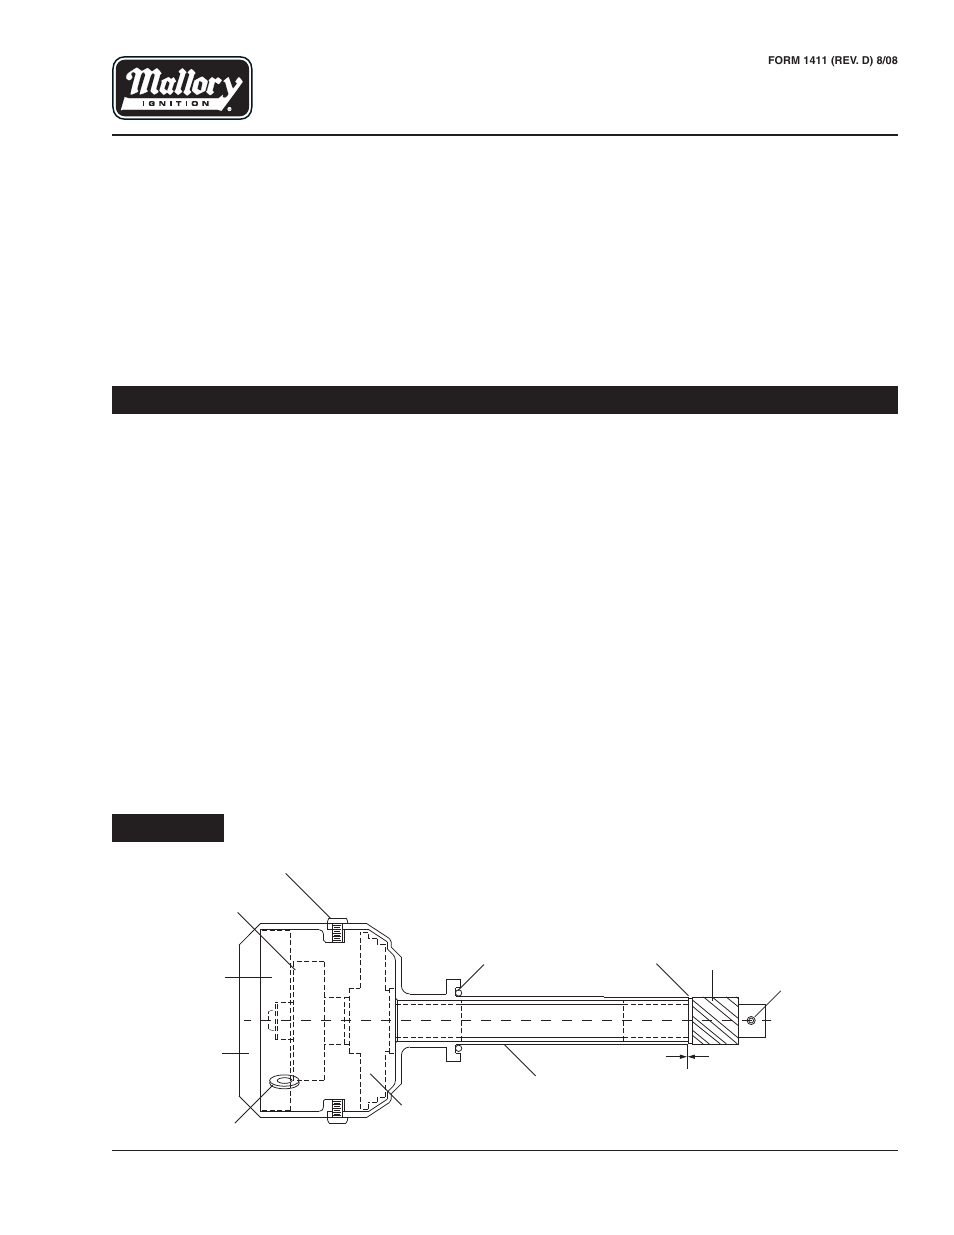 Mallory Unilite Wiring Diagram Model on